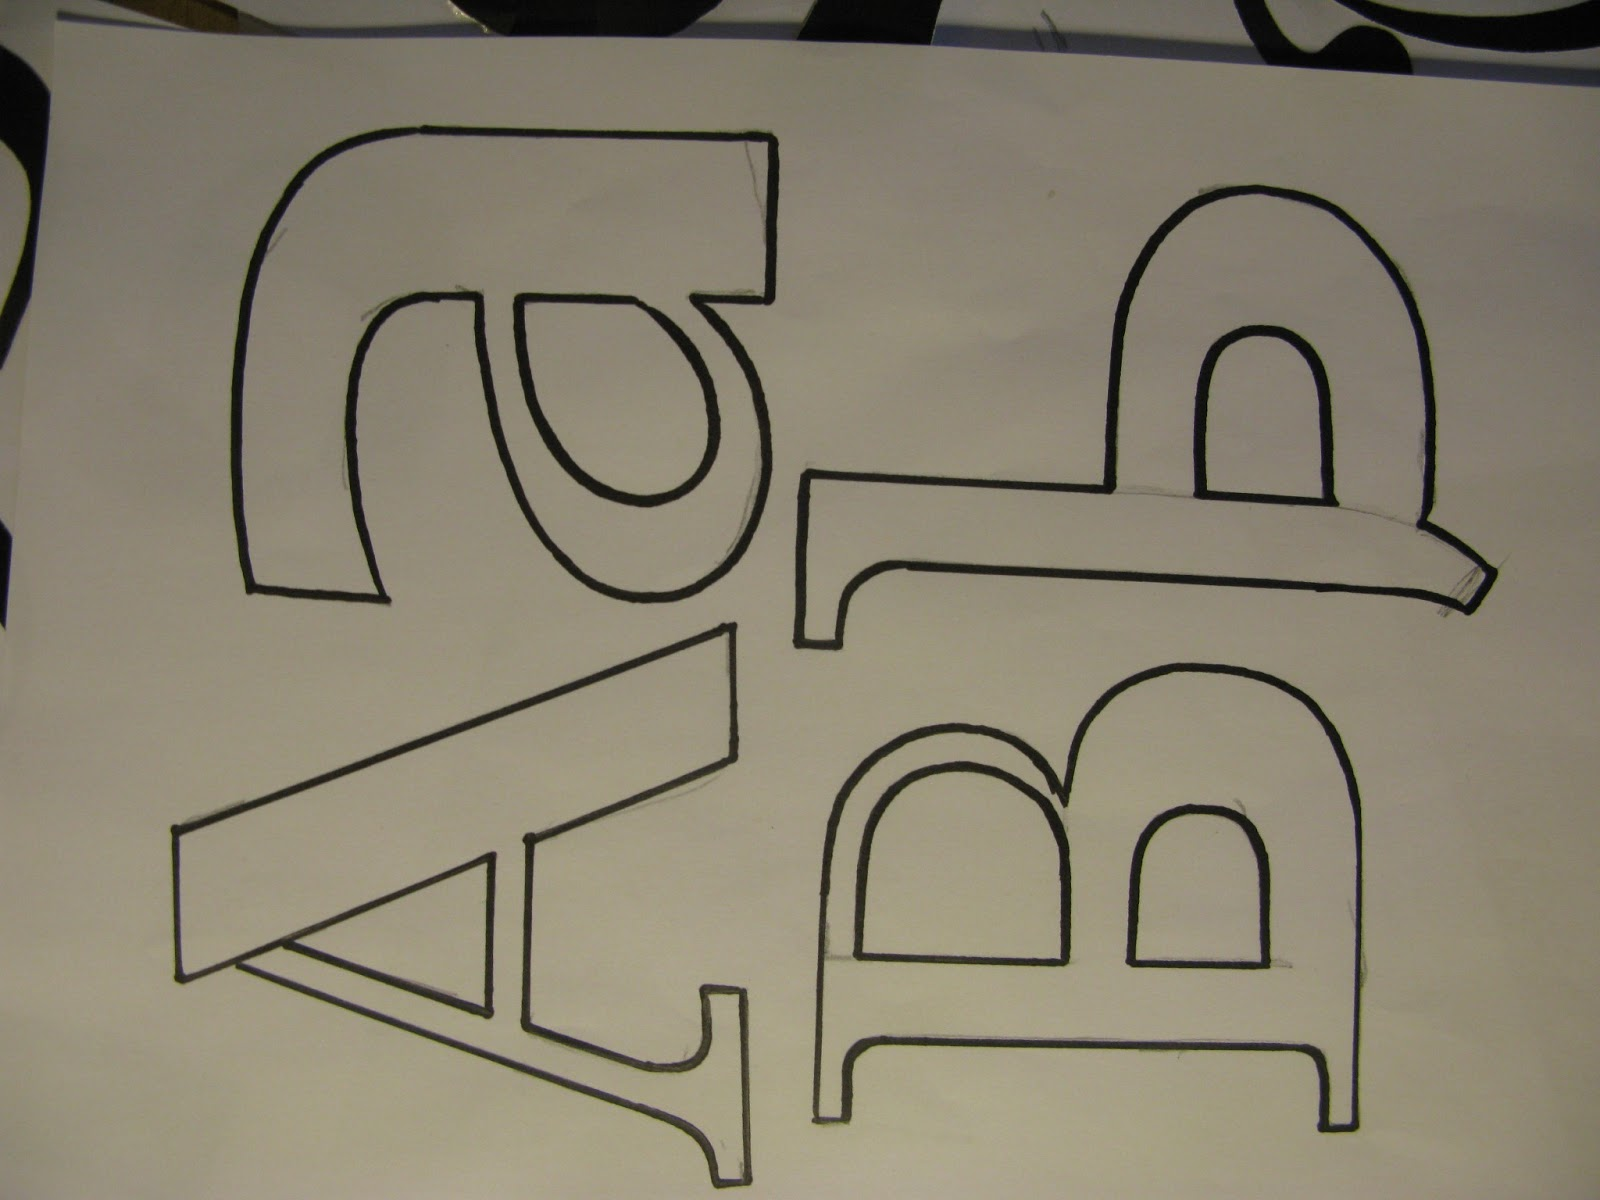 These Are The Final Outcomes Of Letters